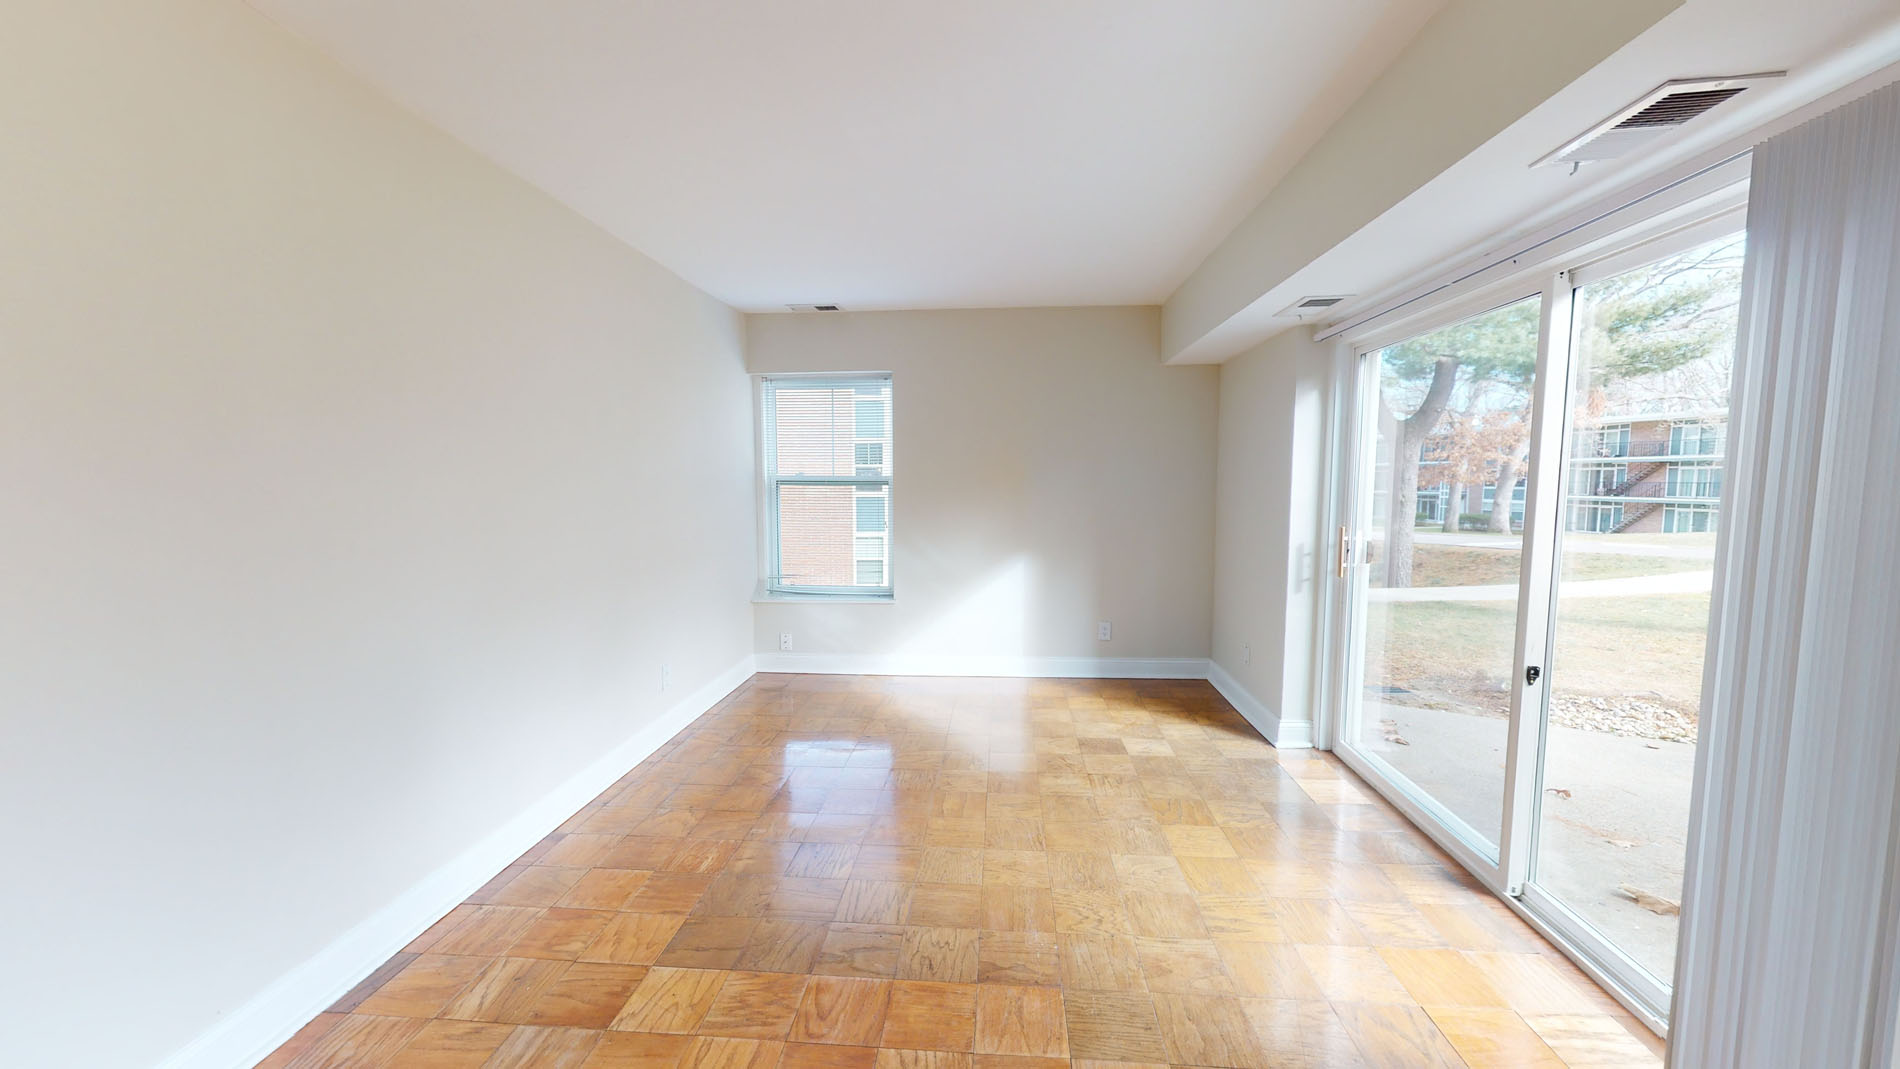 1 Bed, 1 Bath apartment in Norwood for $1,609